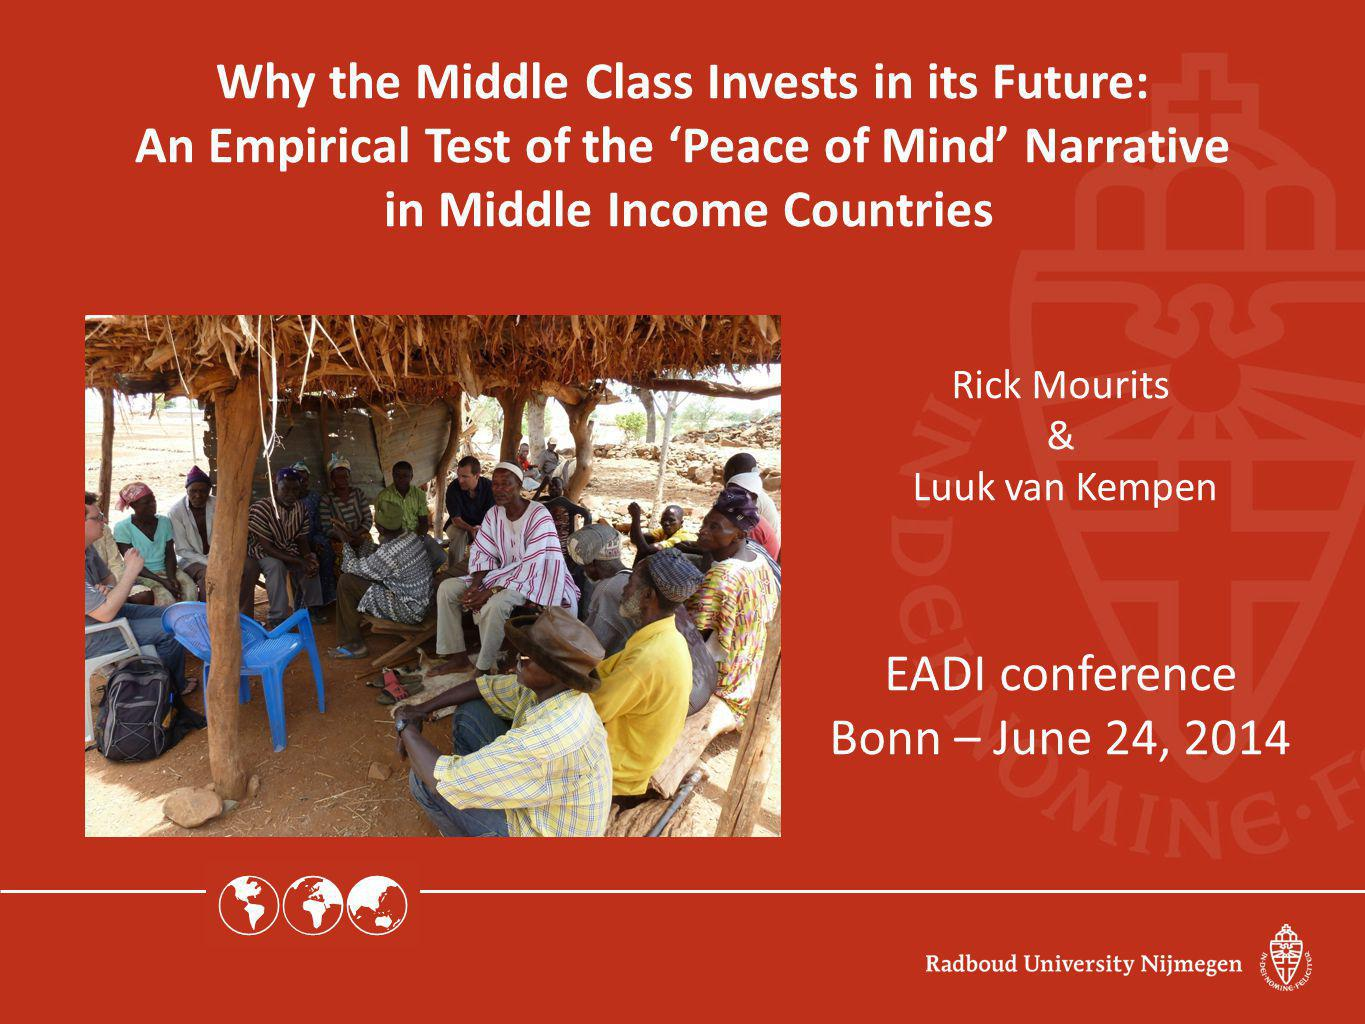  Why the Middle Class Invests in its Future: An Empirical Test of the 'Peace of Mind' Narrative in Middle Income Countries Rick Mourits & Luuk van Kempen EADI conference Bonn – June 24, 2014